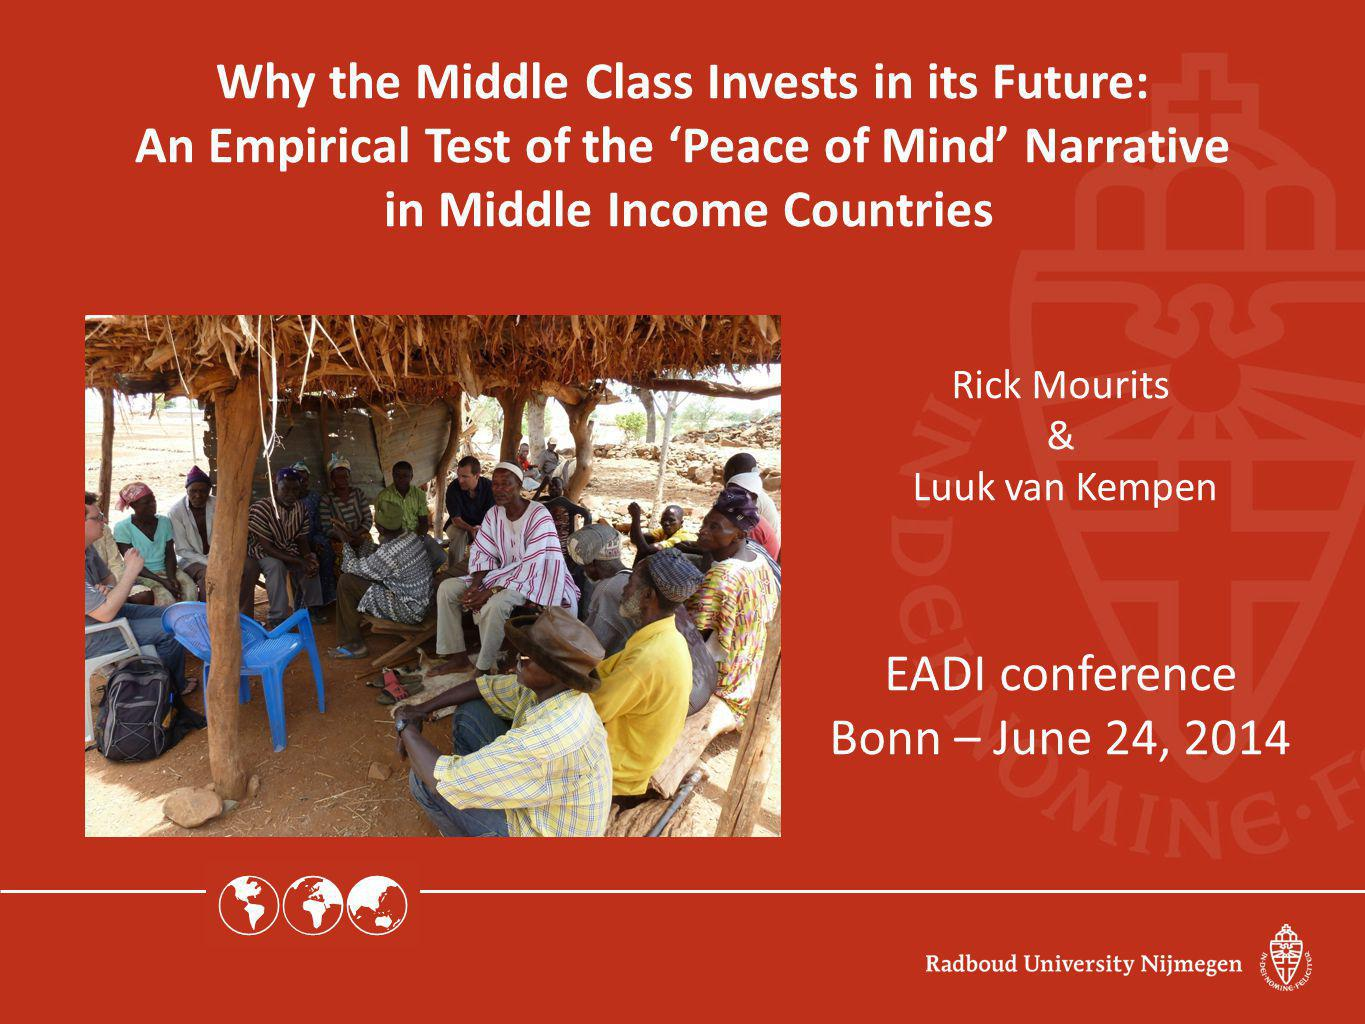  Why the Middle Class Invests in its Future: An Empirical Test of the 'Peace of Mind' Narrative in Middle Income Countries Rick Mourits & Luuk van Kempen EADI conference Bonn – June 24, 2014